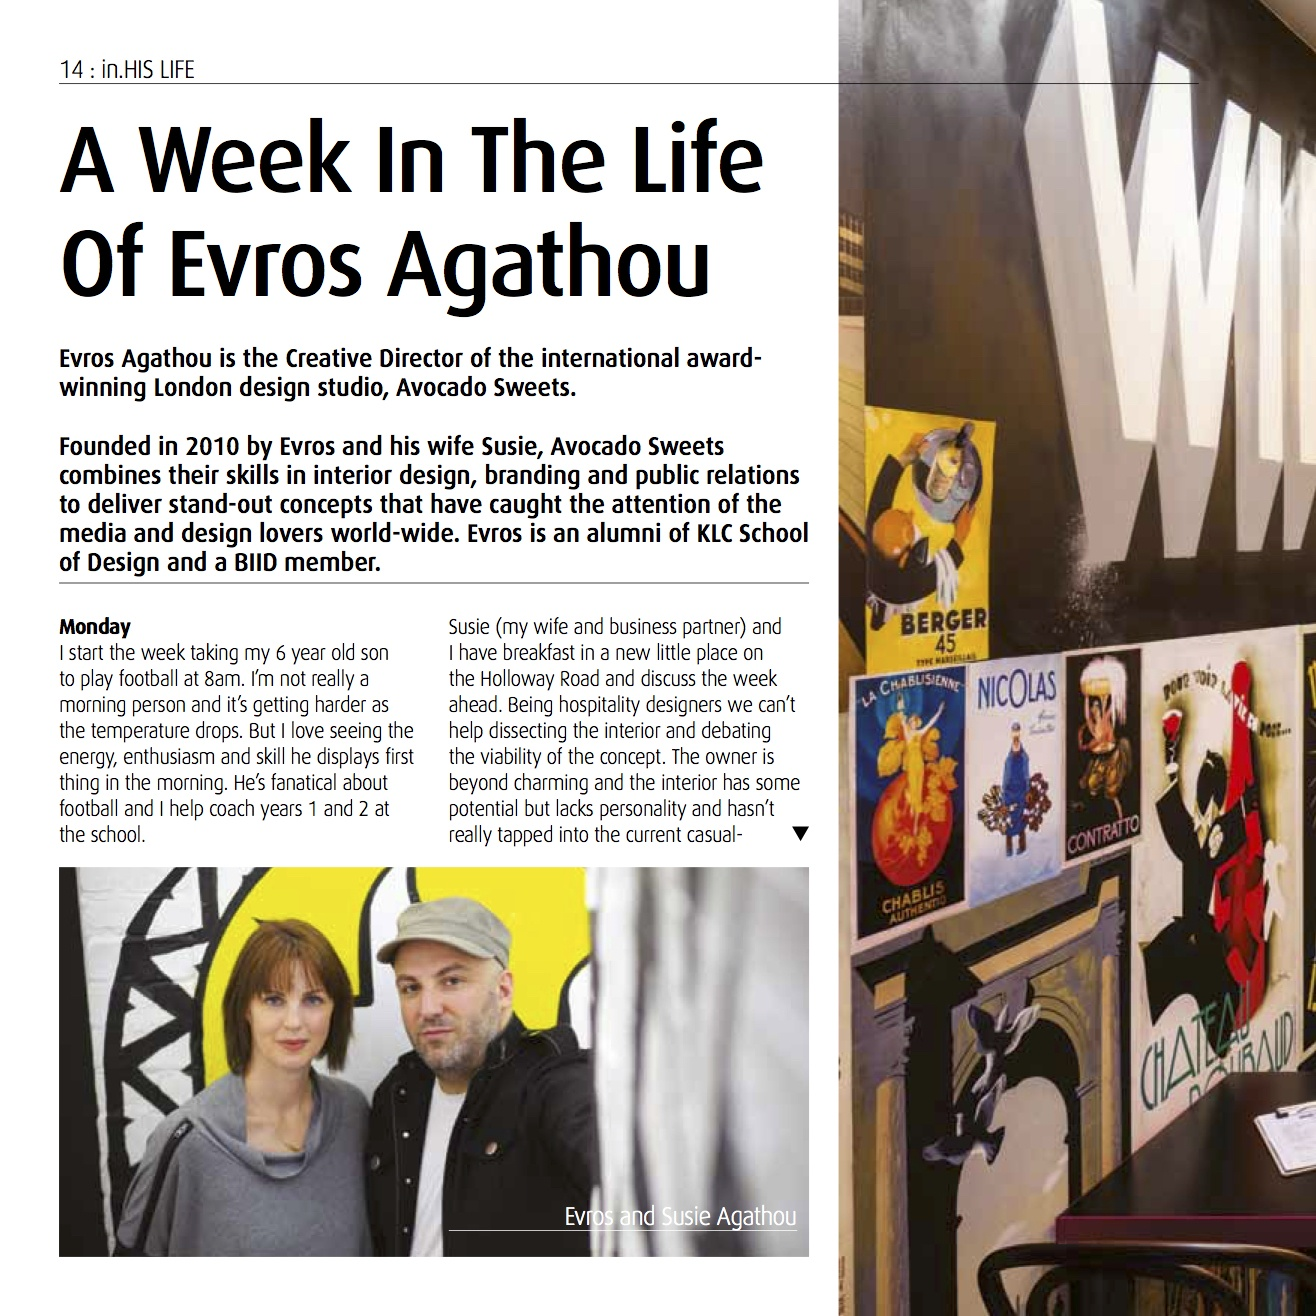 Creative Director, Evros Agathou is featured in a four-page spread.